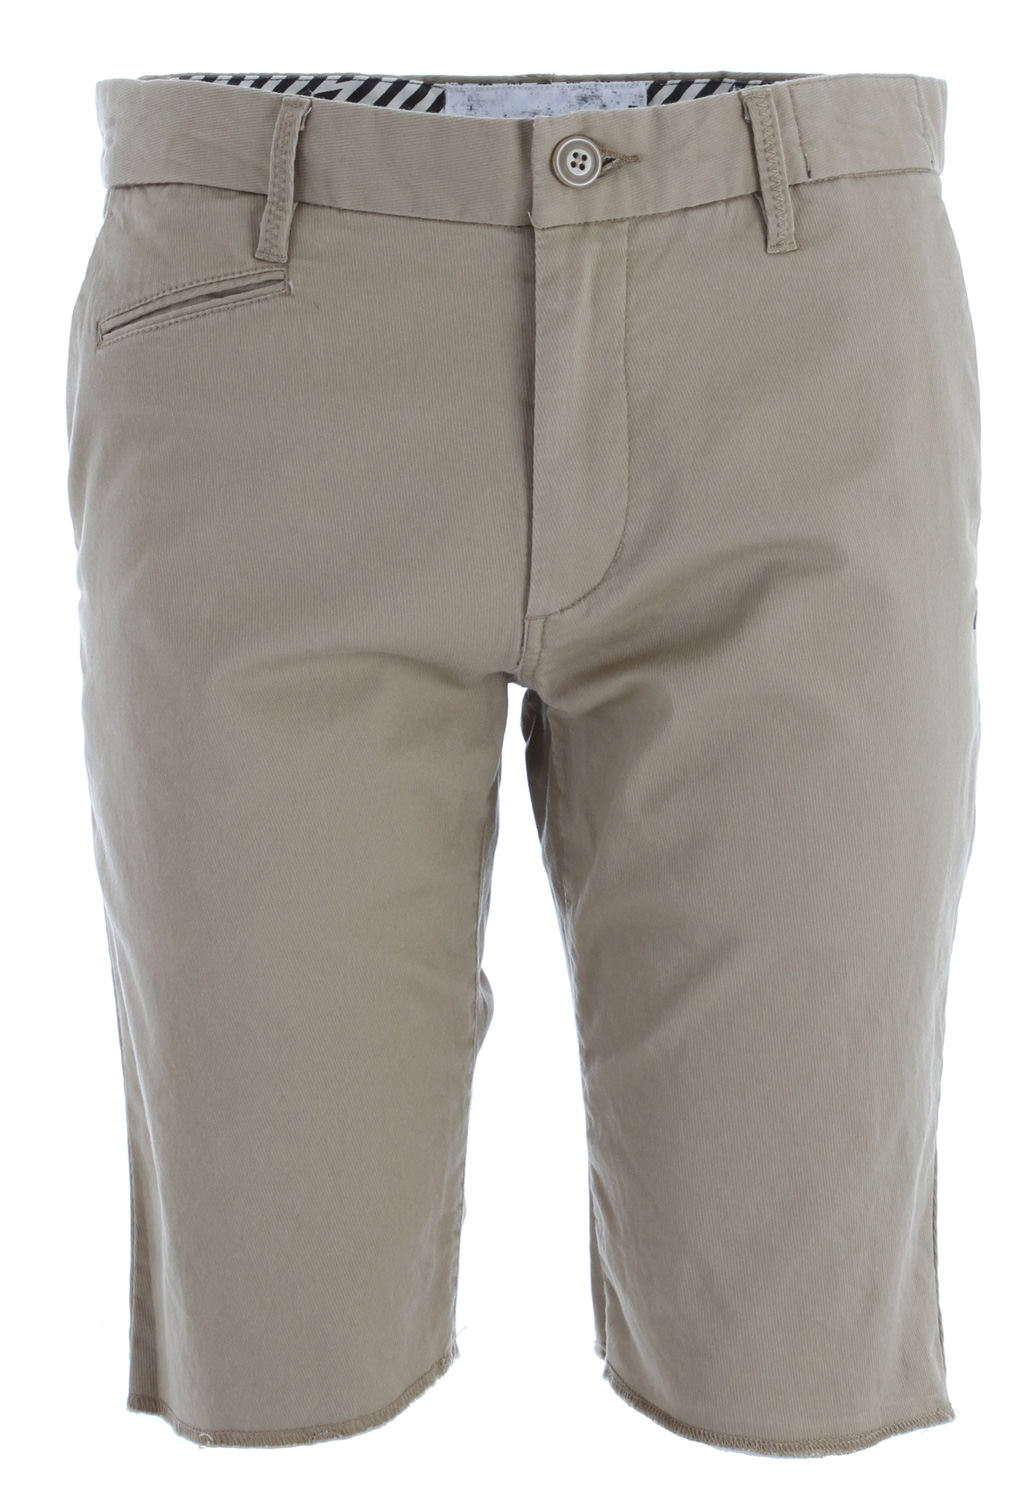 "Motorsports Key Features of the Fox Solid State Shorts: 98% cotton/2% Elastane Army twill Slim fit chino short with canvas main label Zip fly with Fox rivet and polyester buttons 21"" outseam - $37.95"